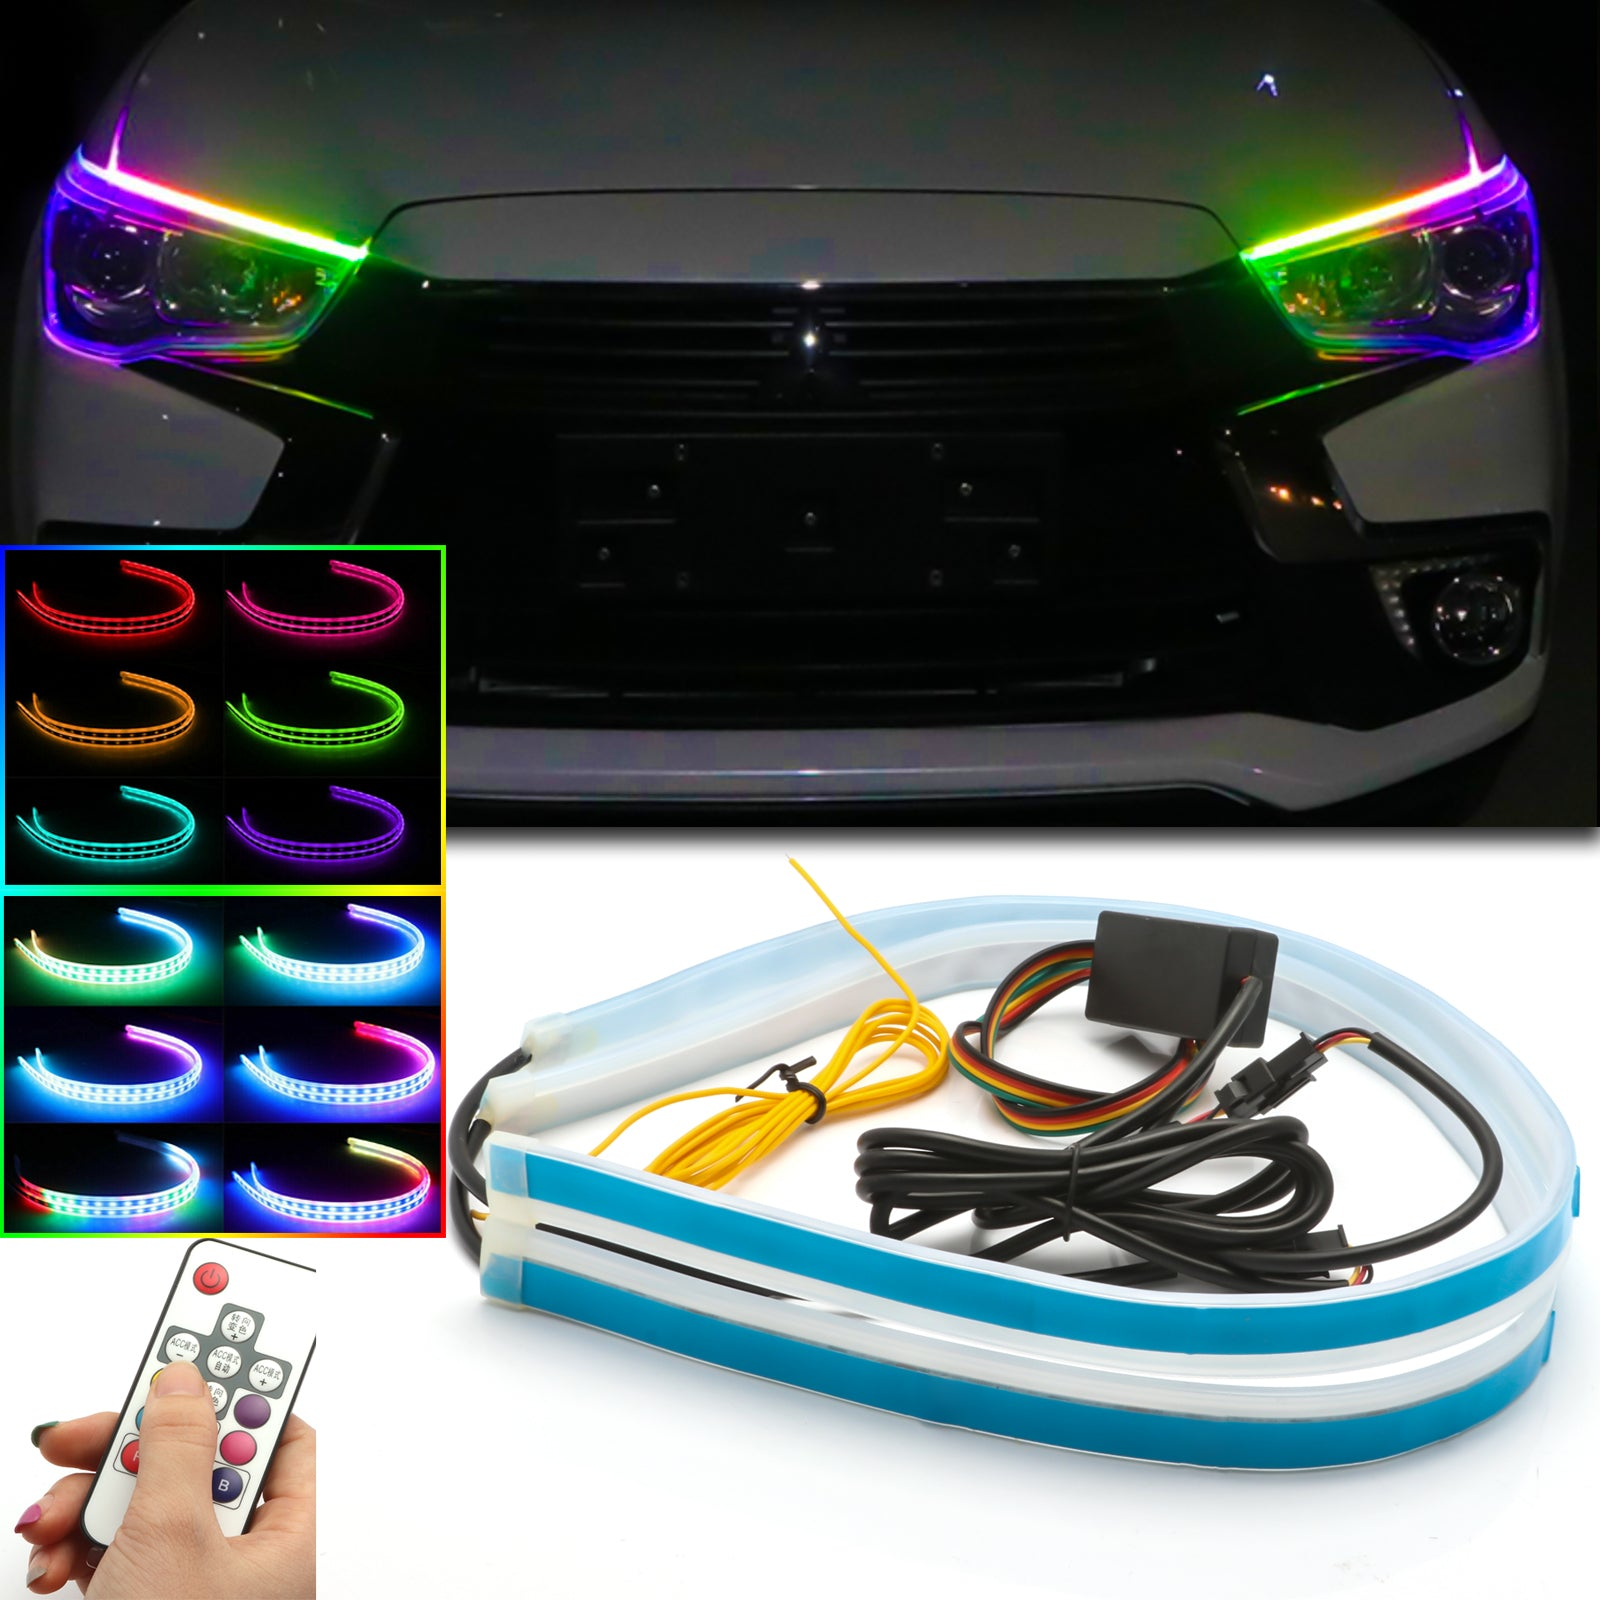 Car Flexible Daytime Running Lights Ice White-Amber Dual Color Sequence LED Strip Tube Switchback Headlight /& Turn Signal Lights Tube Fits for Any 12V Cars FAYUE 2Pcs 24 Inches DRL LED Light Strip